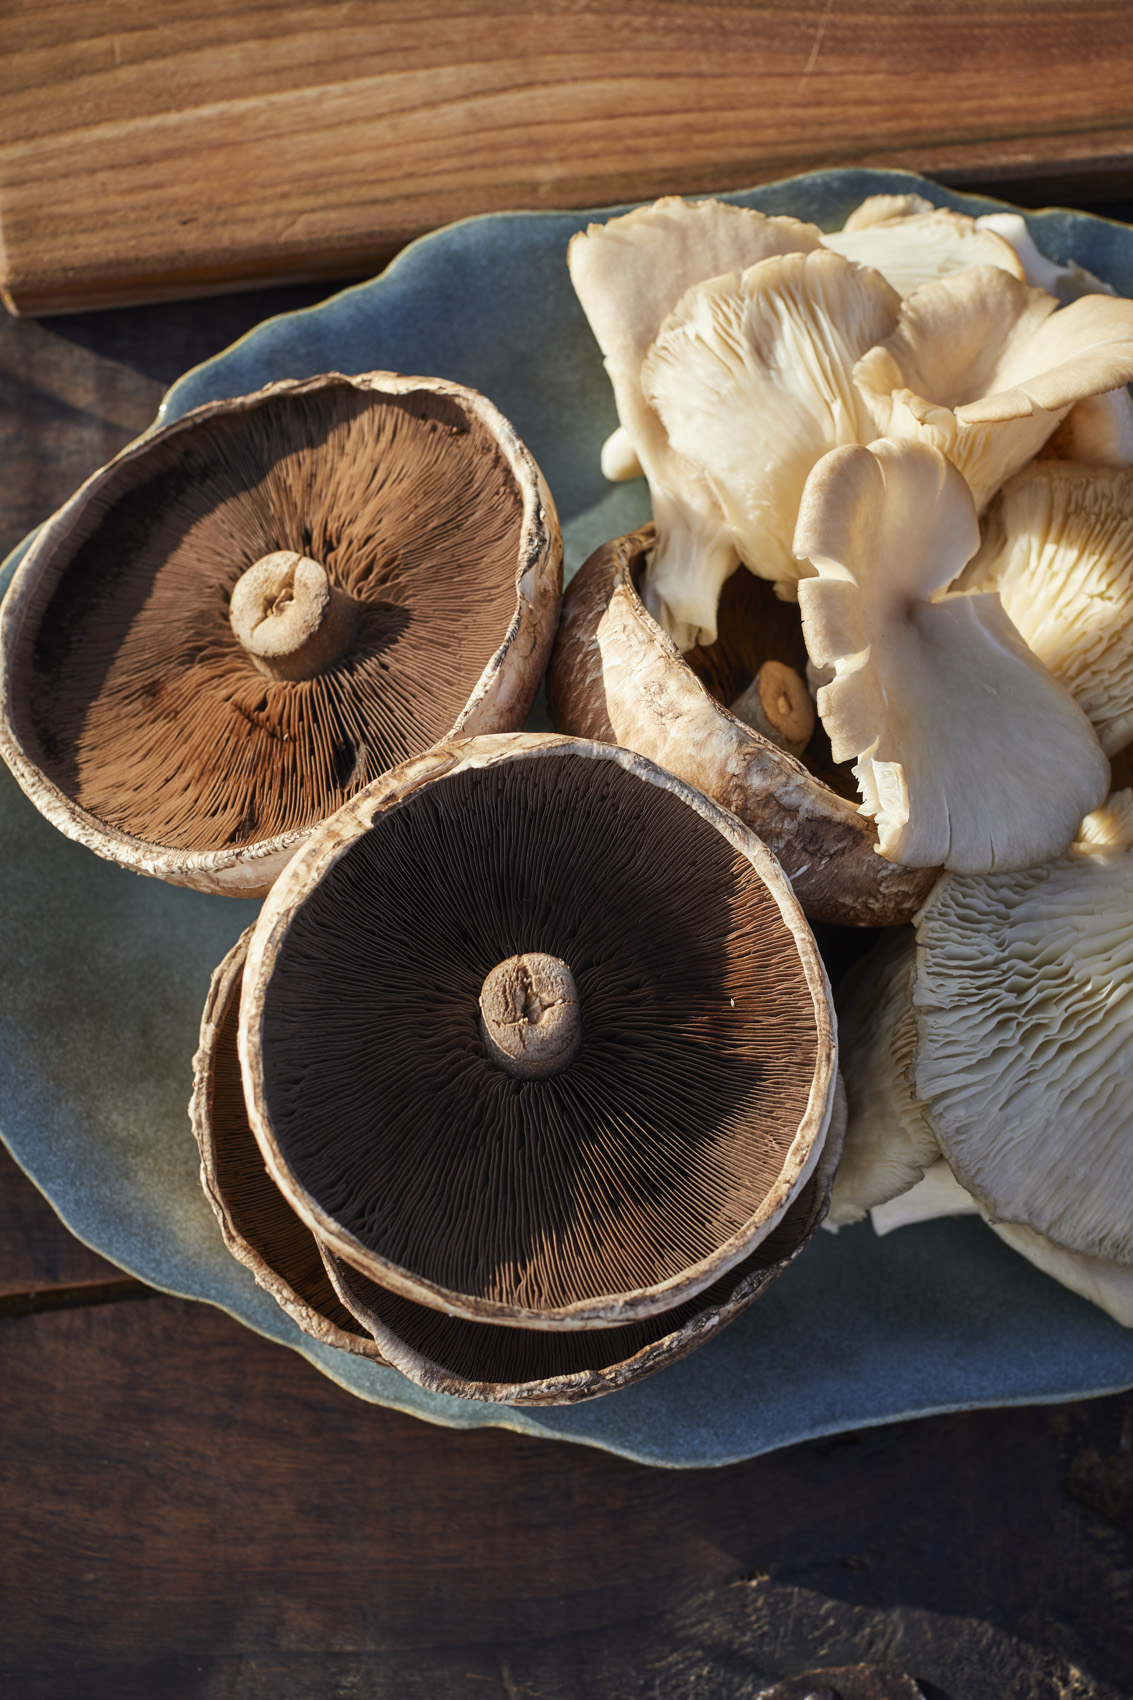 SteveRyan_Photographer_Ingredients_Produce_Vegetables_Mushrooms_03